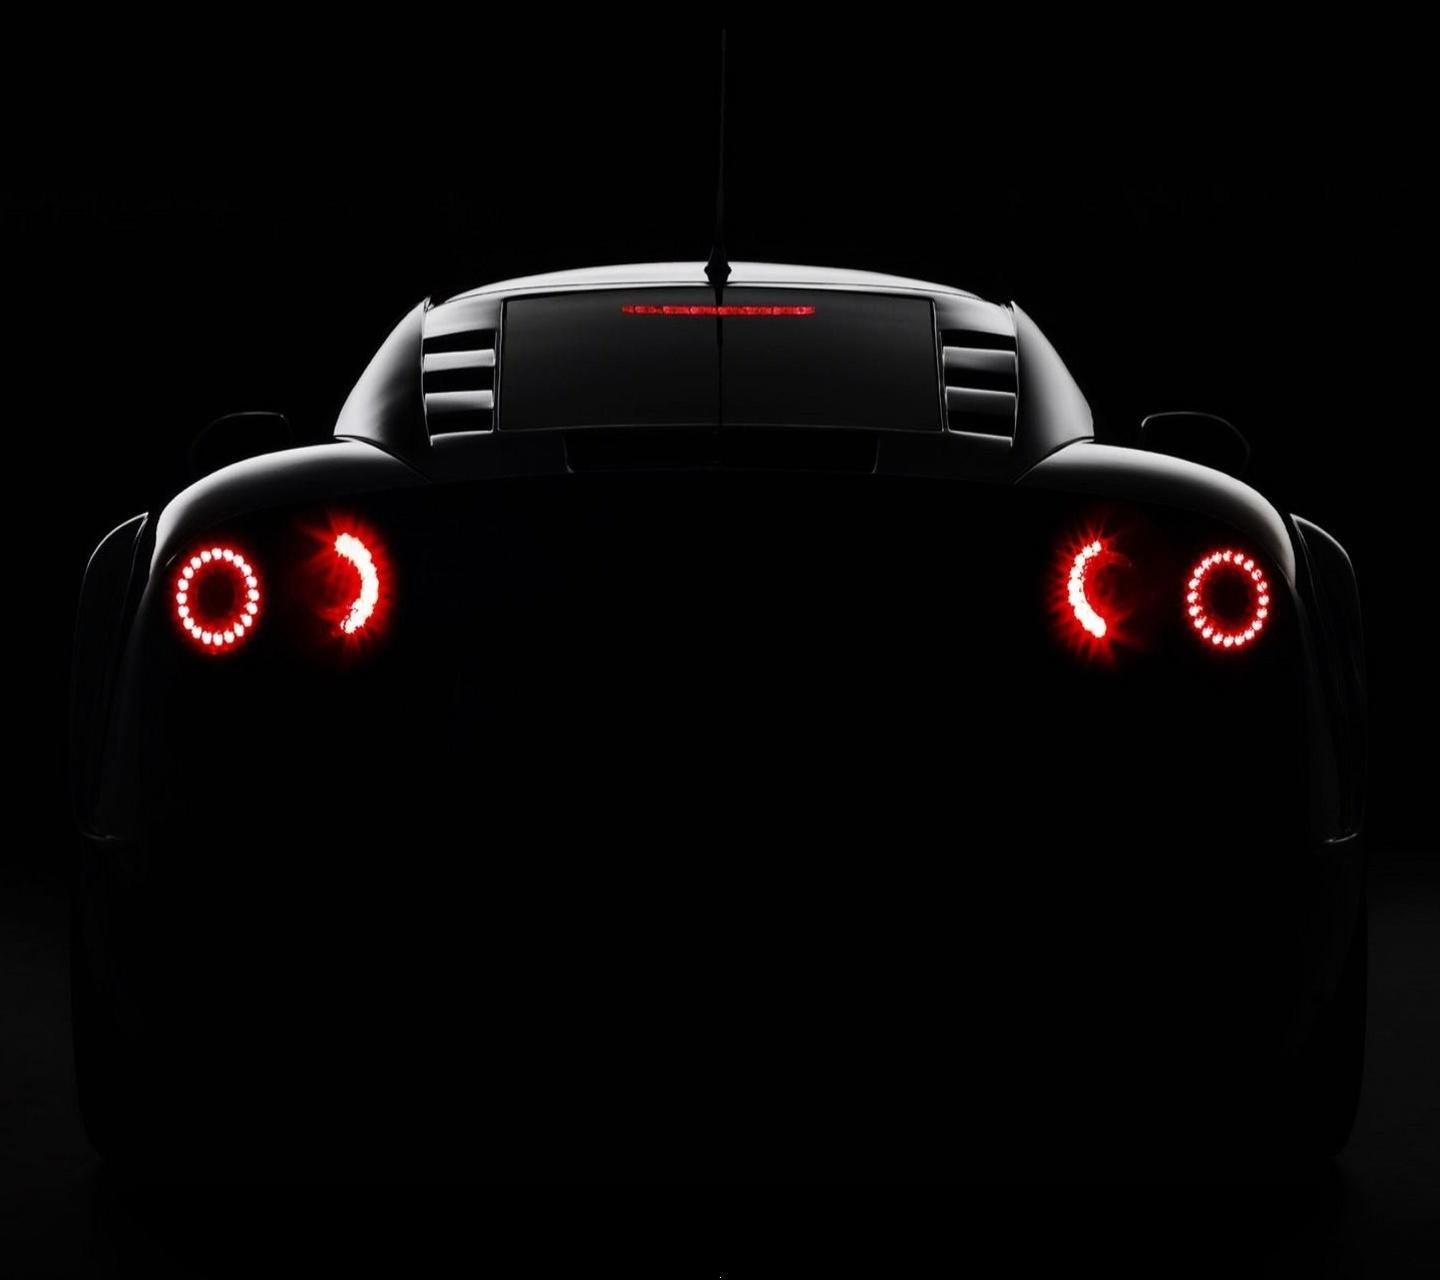 Download Black Car 1 Cars Wallpapers For Your Mobile Cell Phone